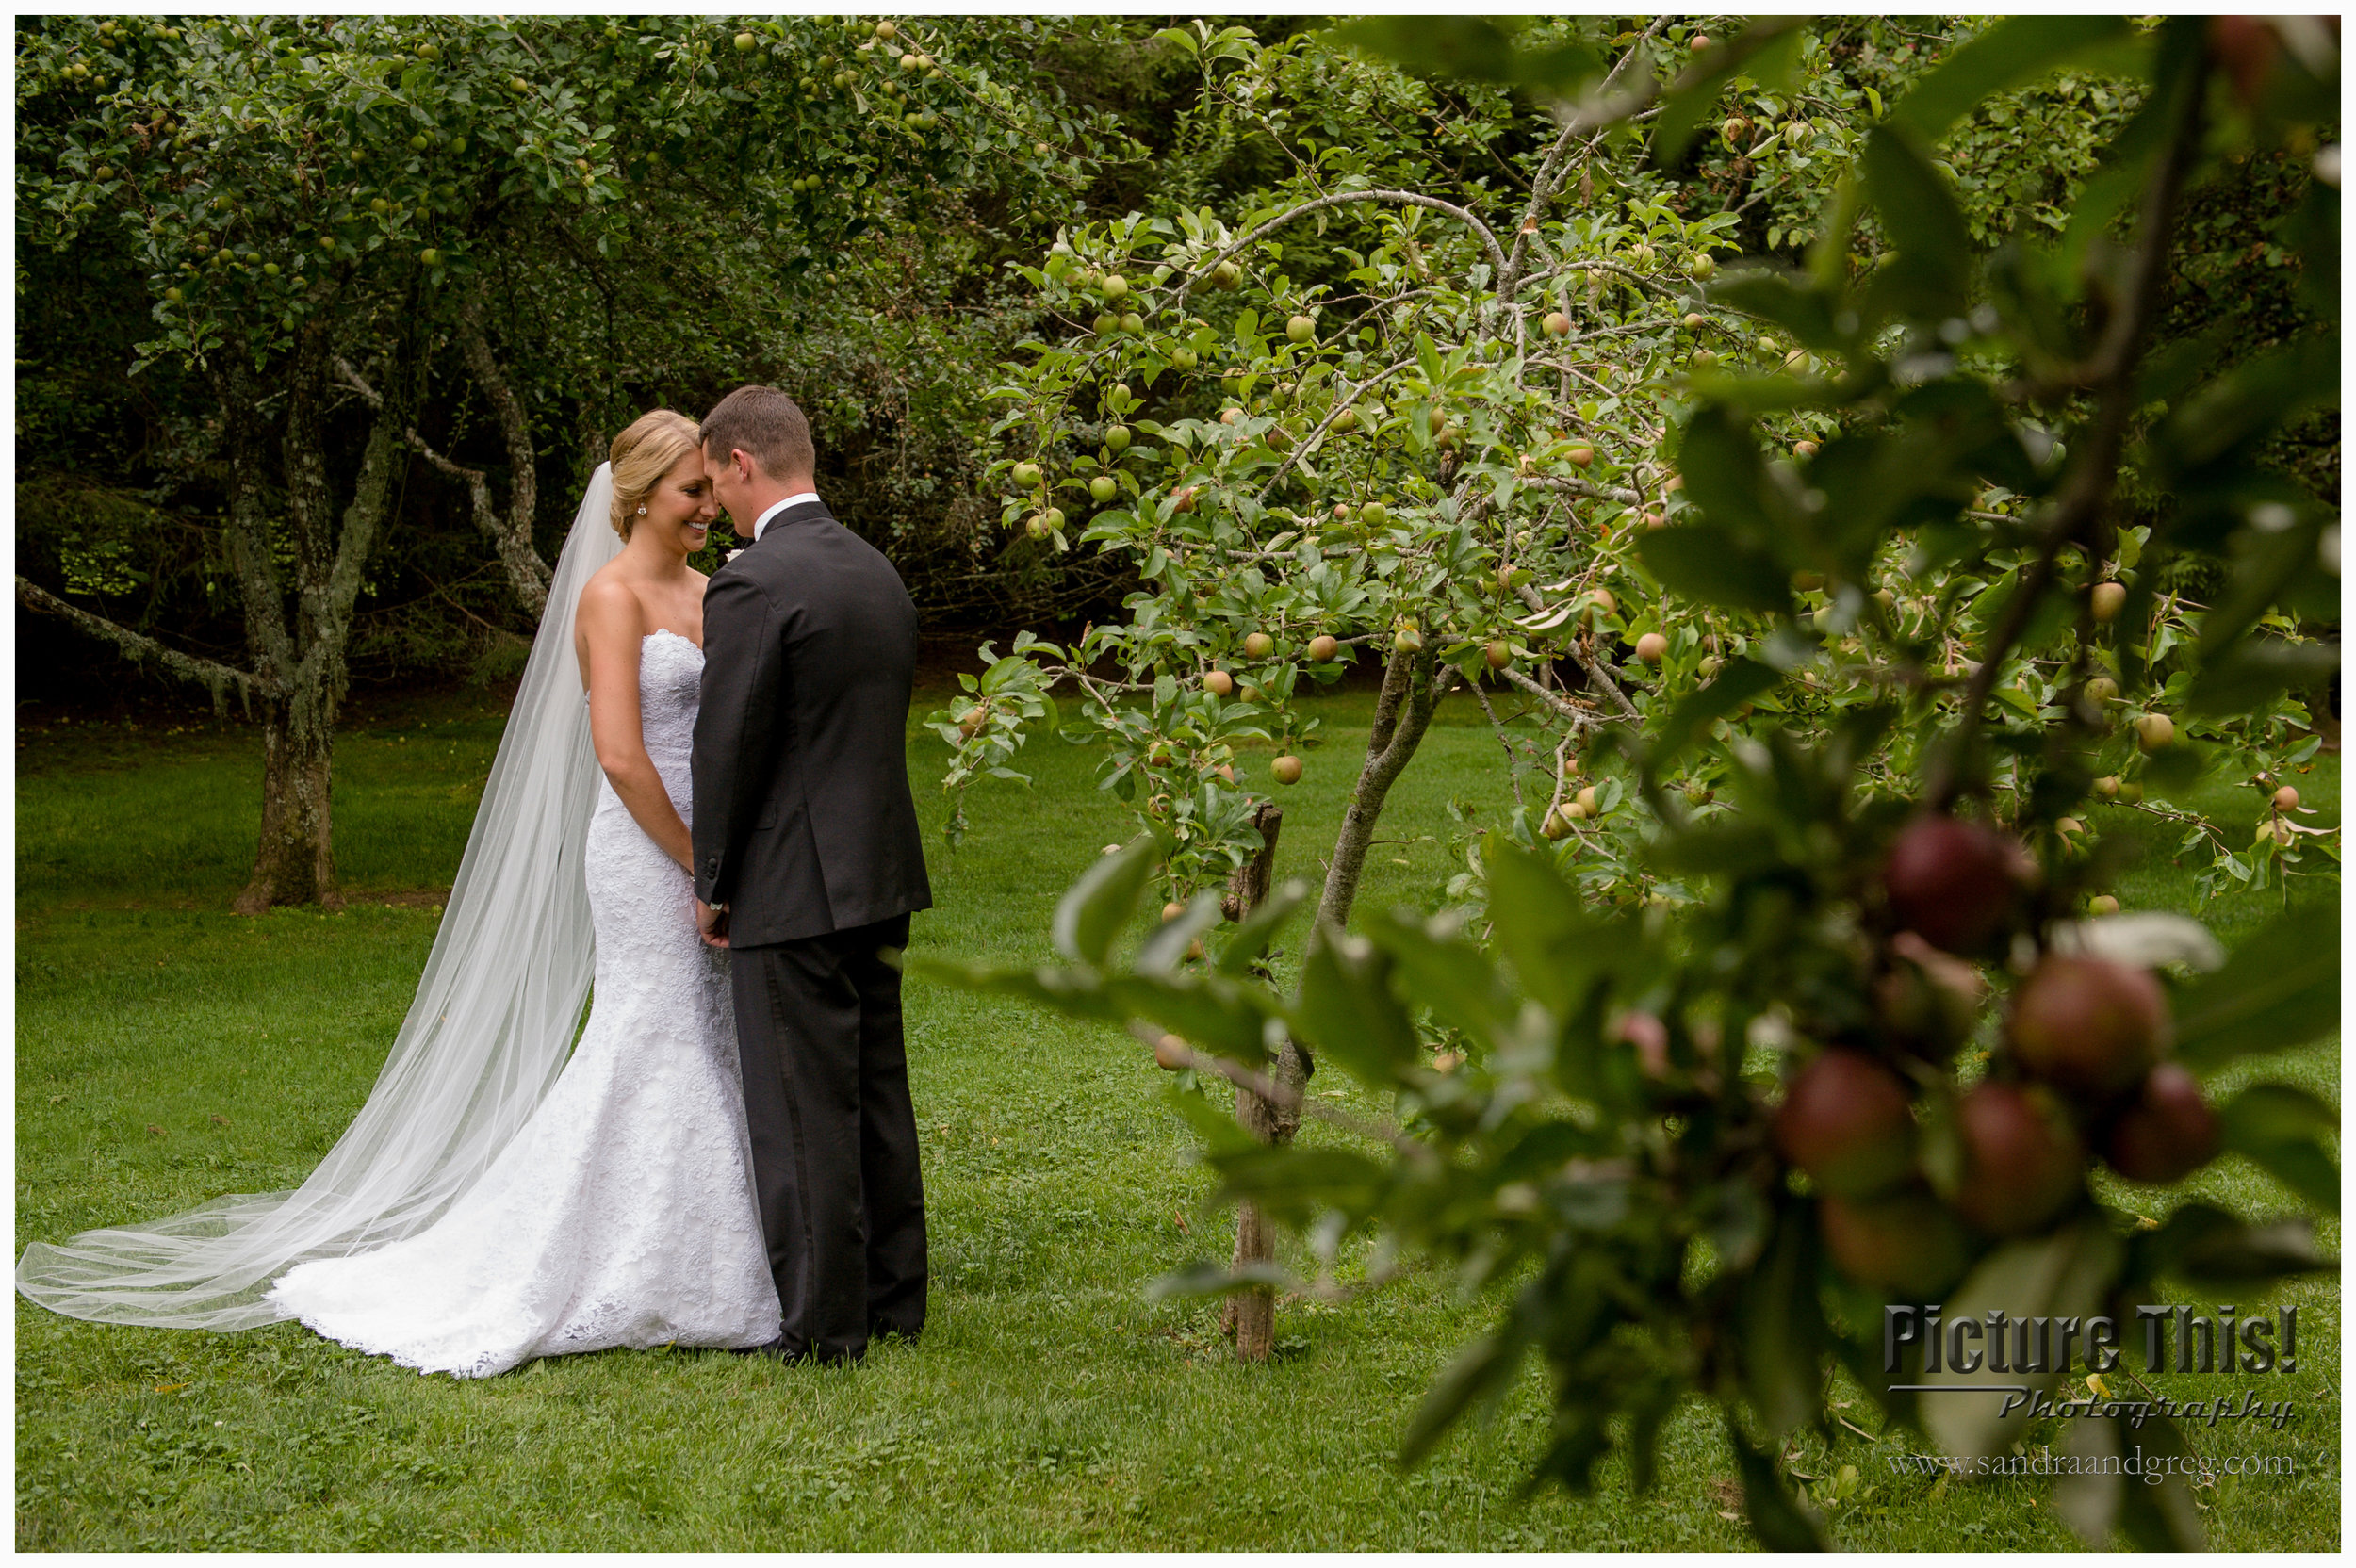 Chelsey & Tom at The Farm at Old Edwards Inn